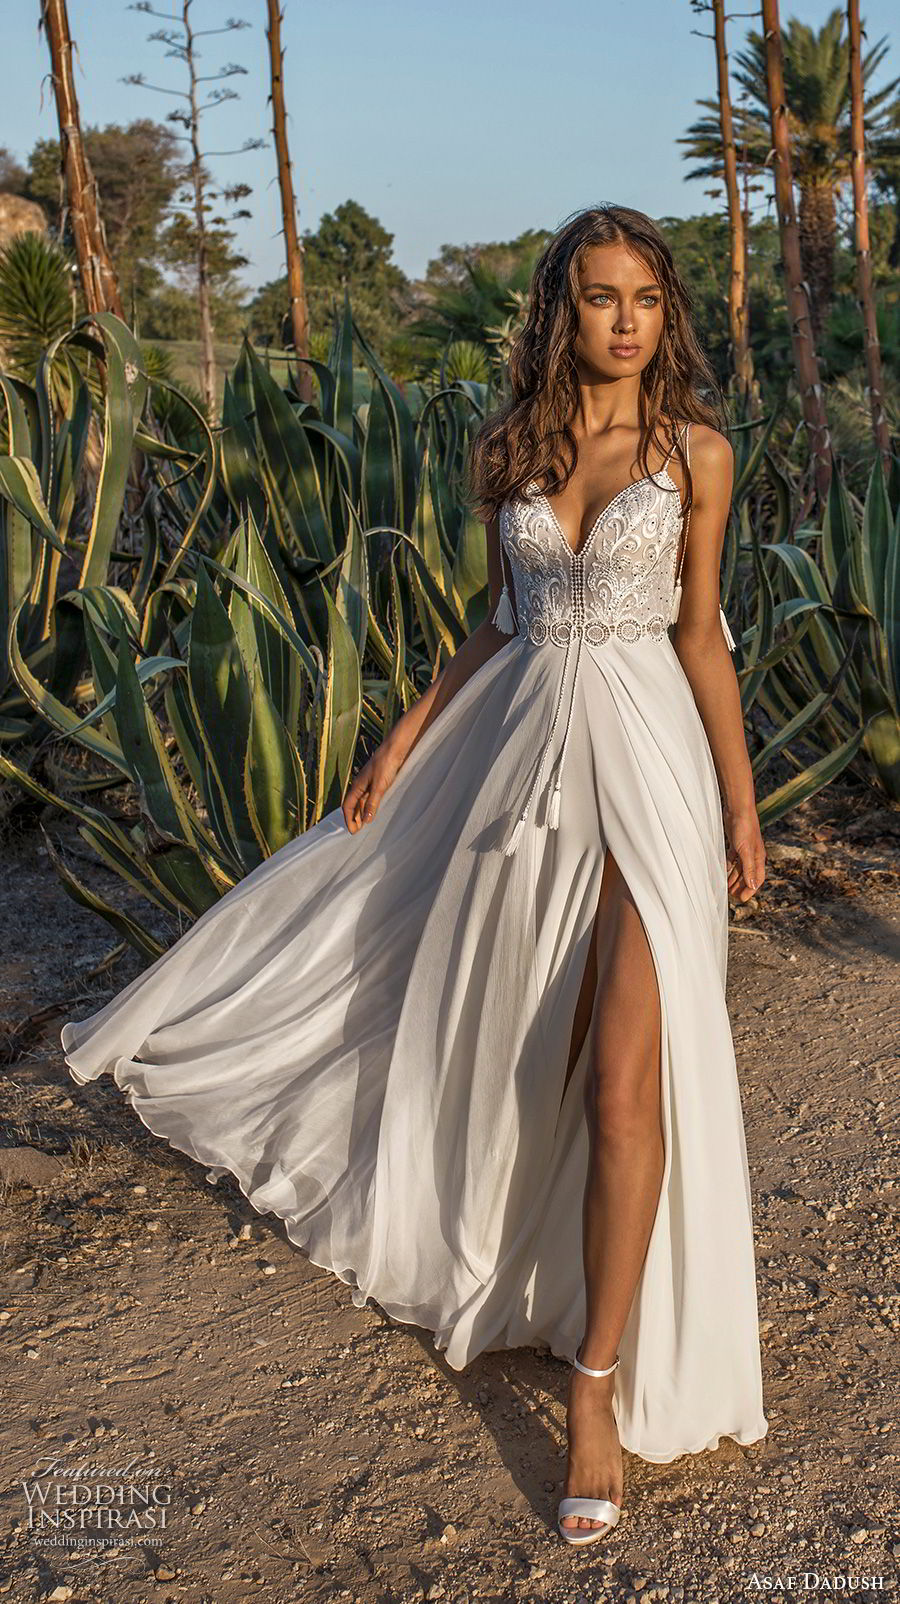 asaf dadush 2018 bridal spaghetti strap sweetheart neckline heavily embellished bodice side slit romantic wedding dress open back sweep train (12) mv